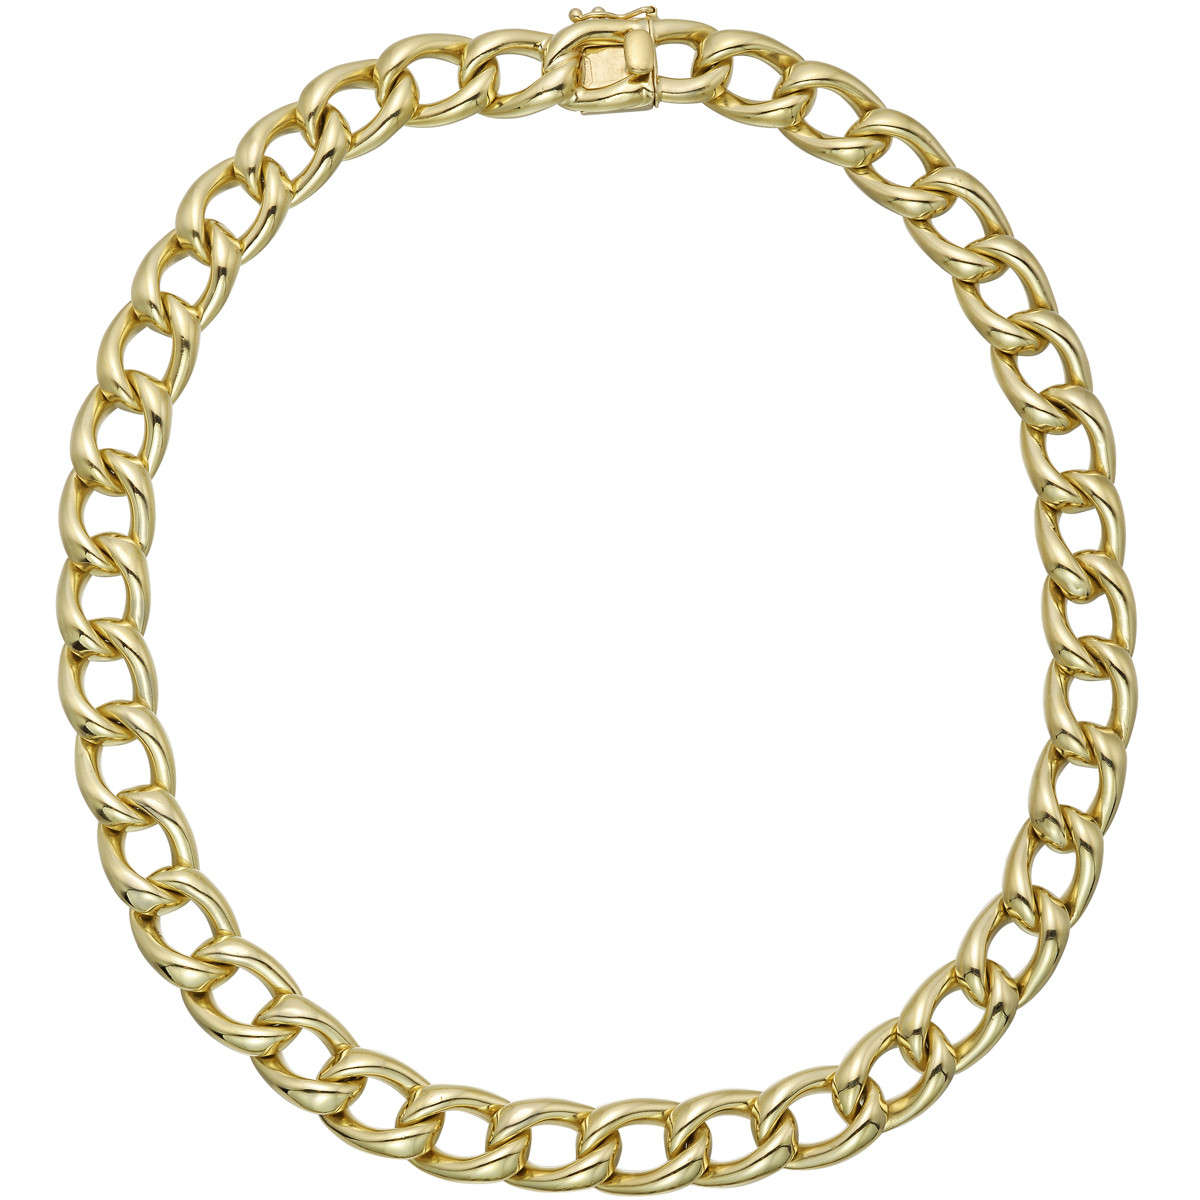 14k Yellow Gold Curb-Link Necklace